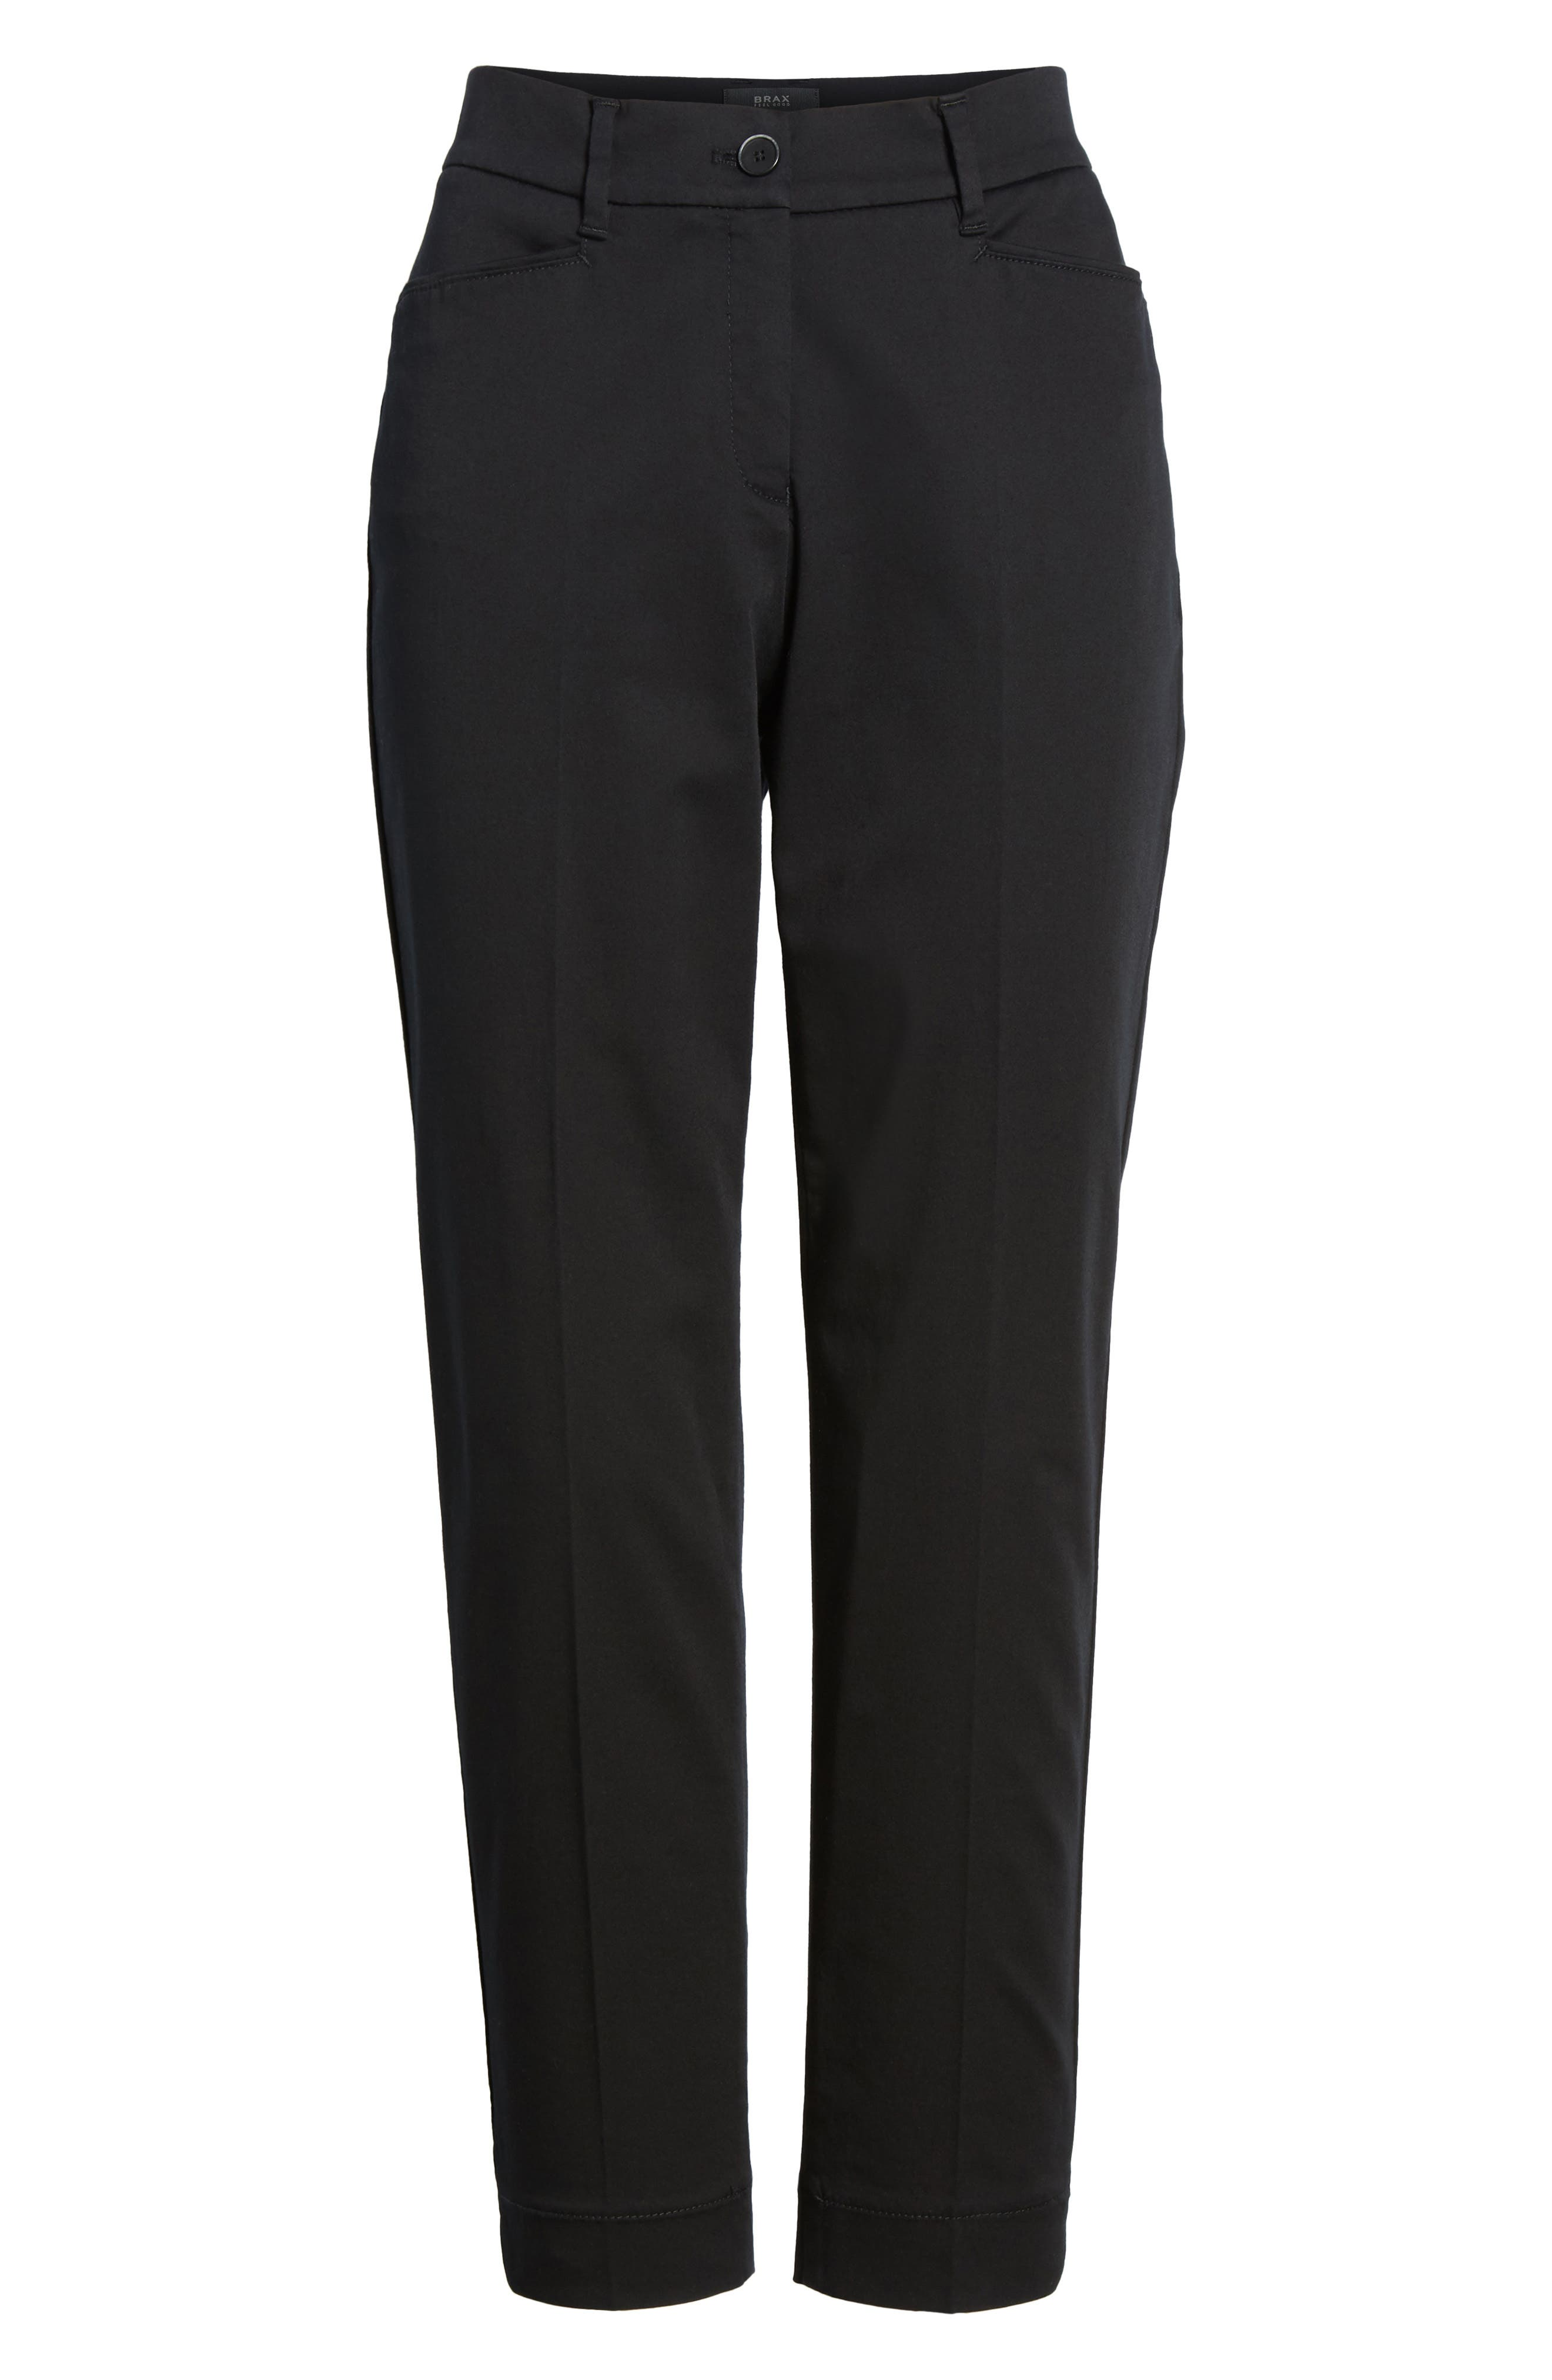 Straight Leg Cropped Trousers,                             Alternate thumbnail 7, color,                             Black